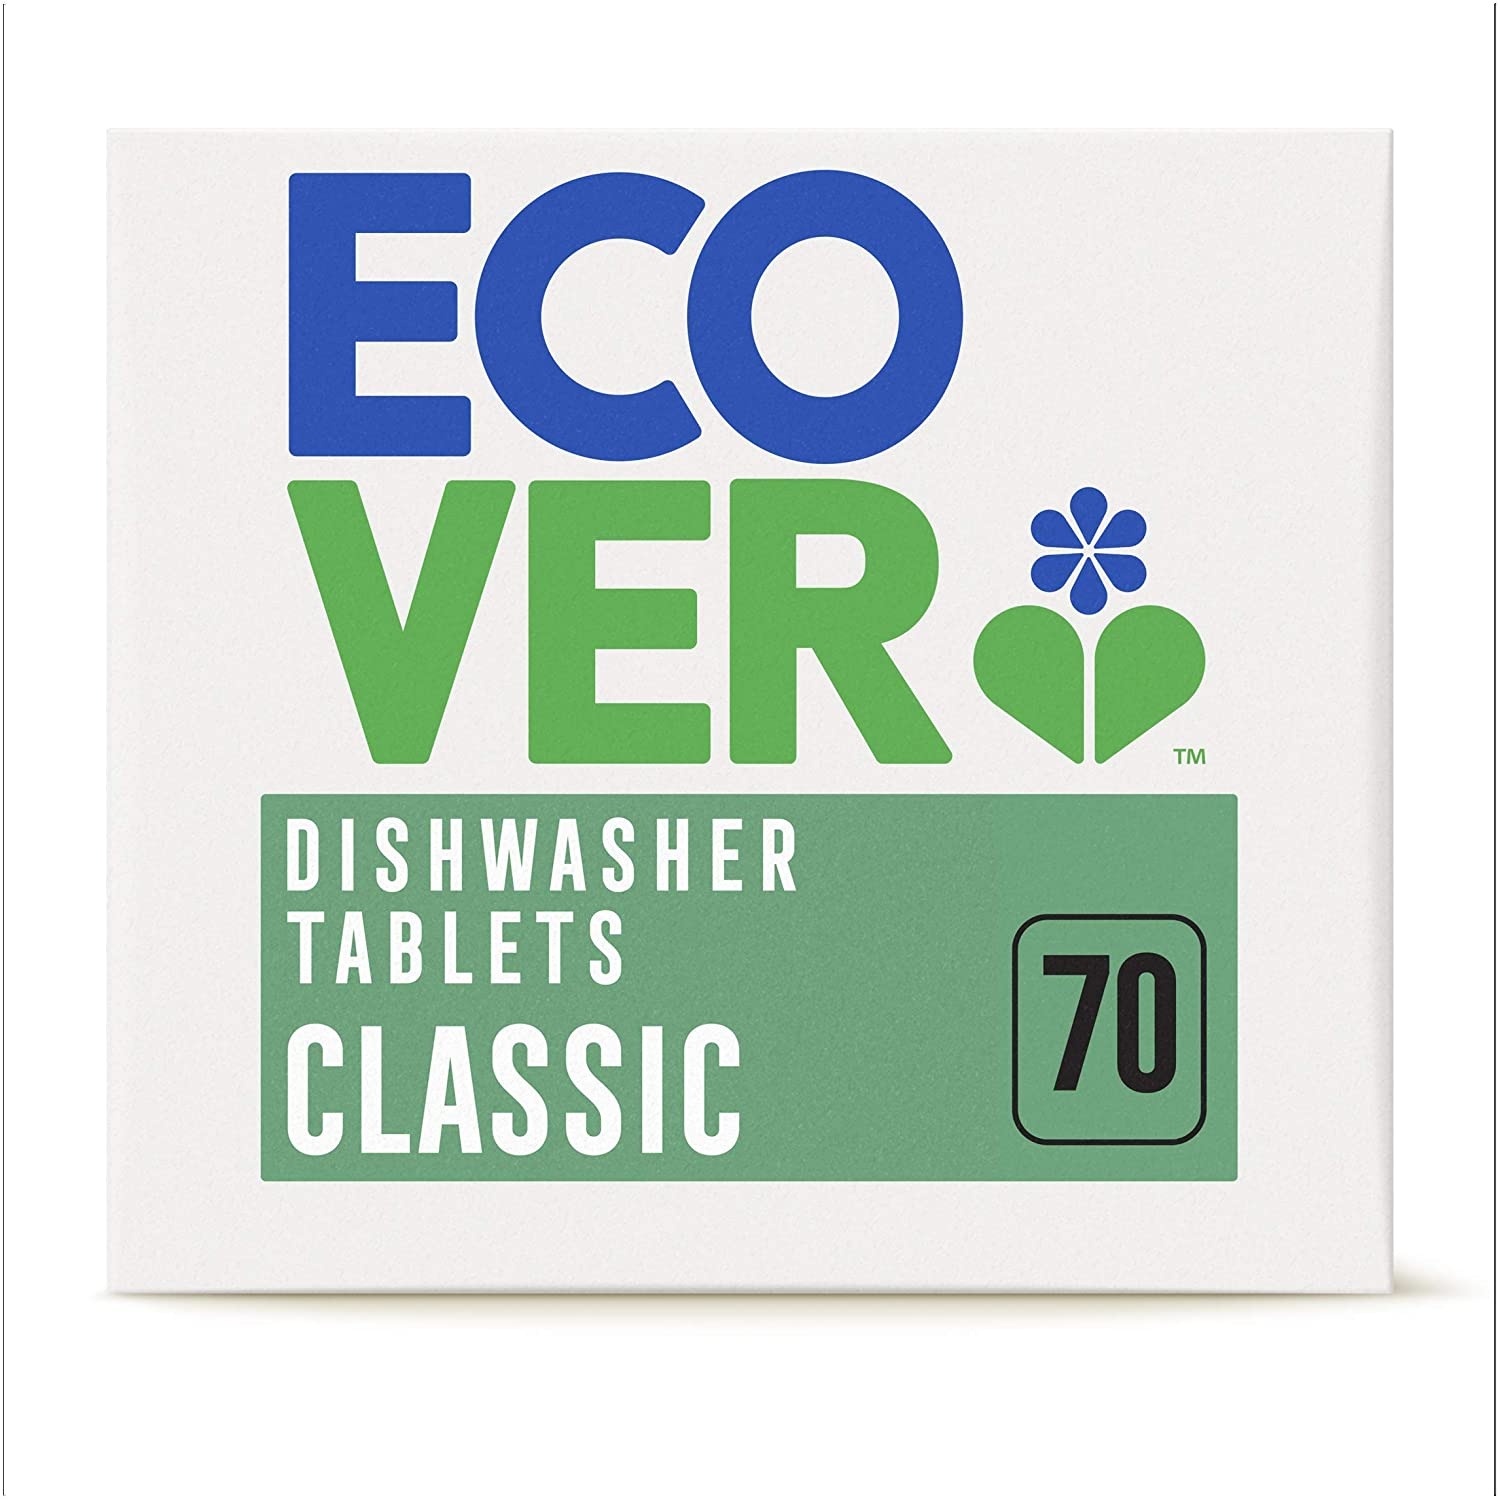 Dishwasher Tablets Classic